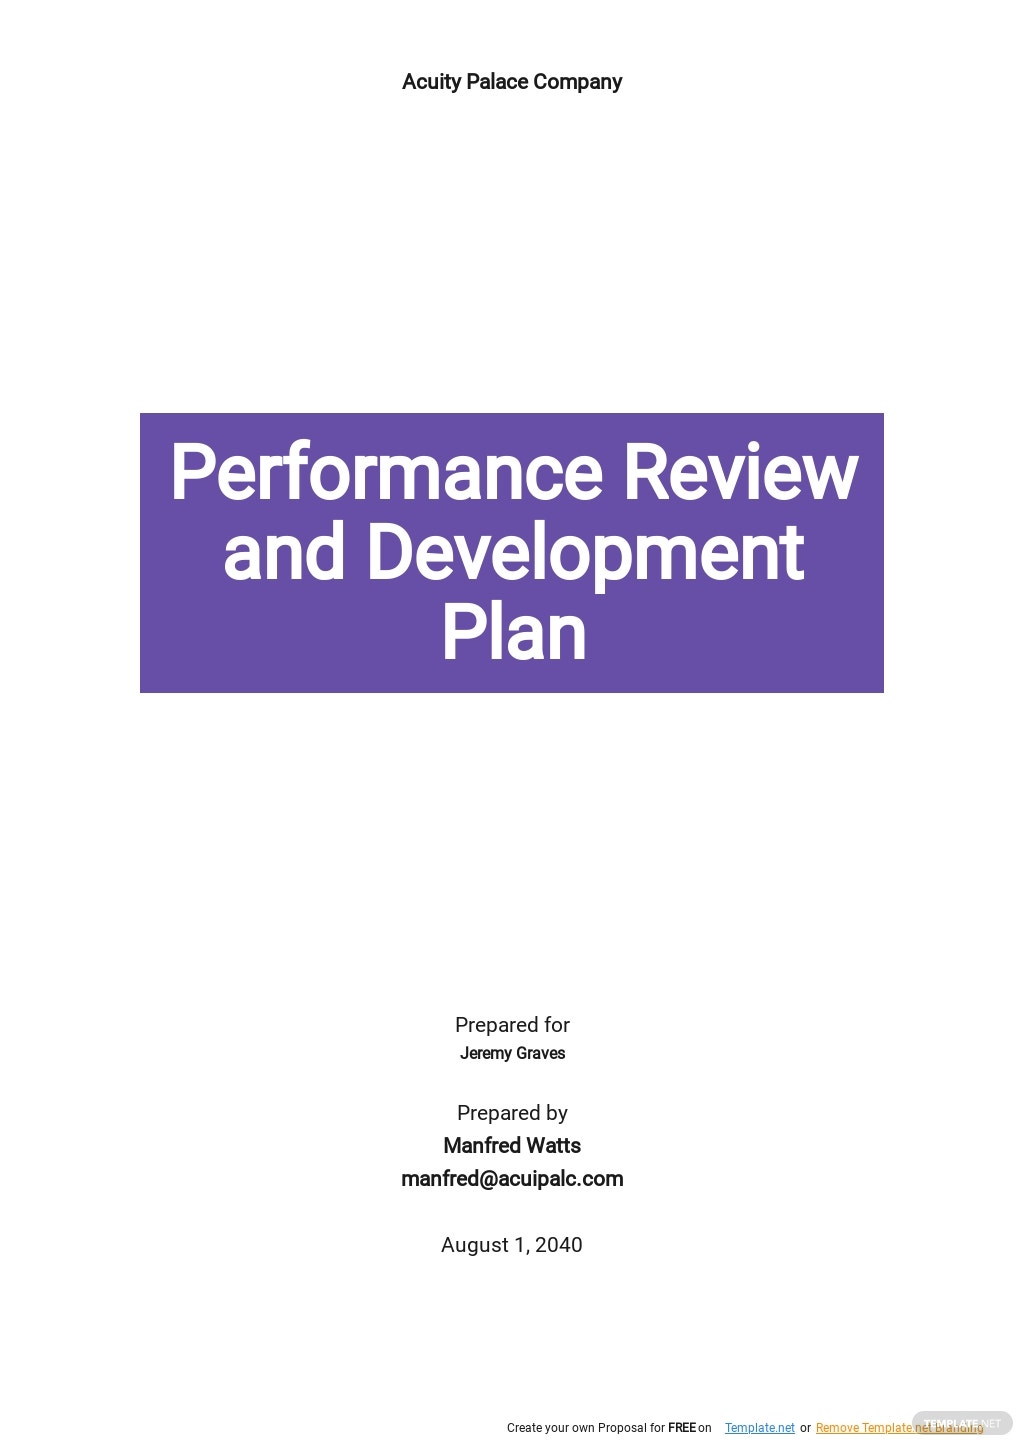 Performance Review and Development Plan Template.jpe